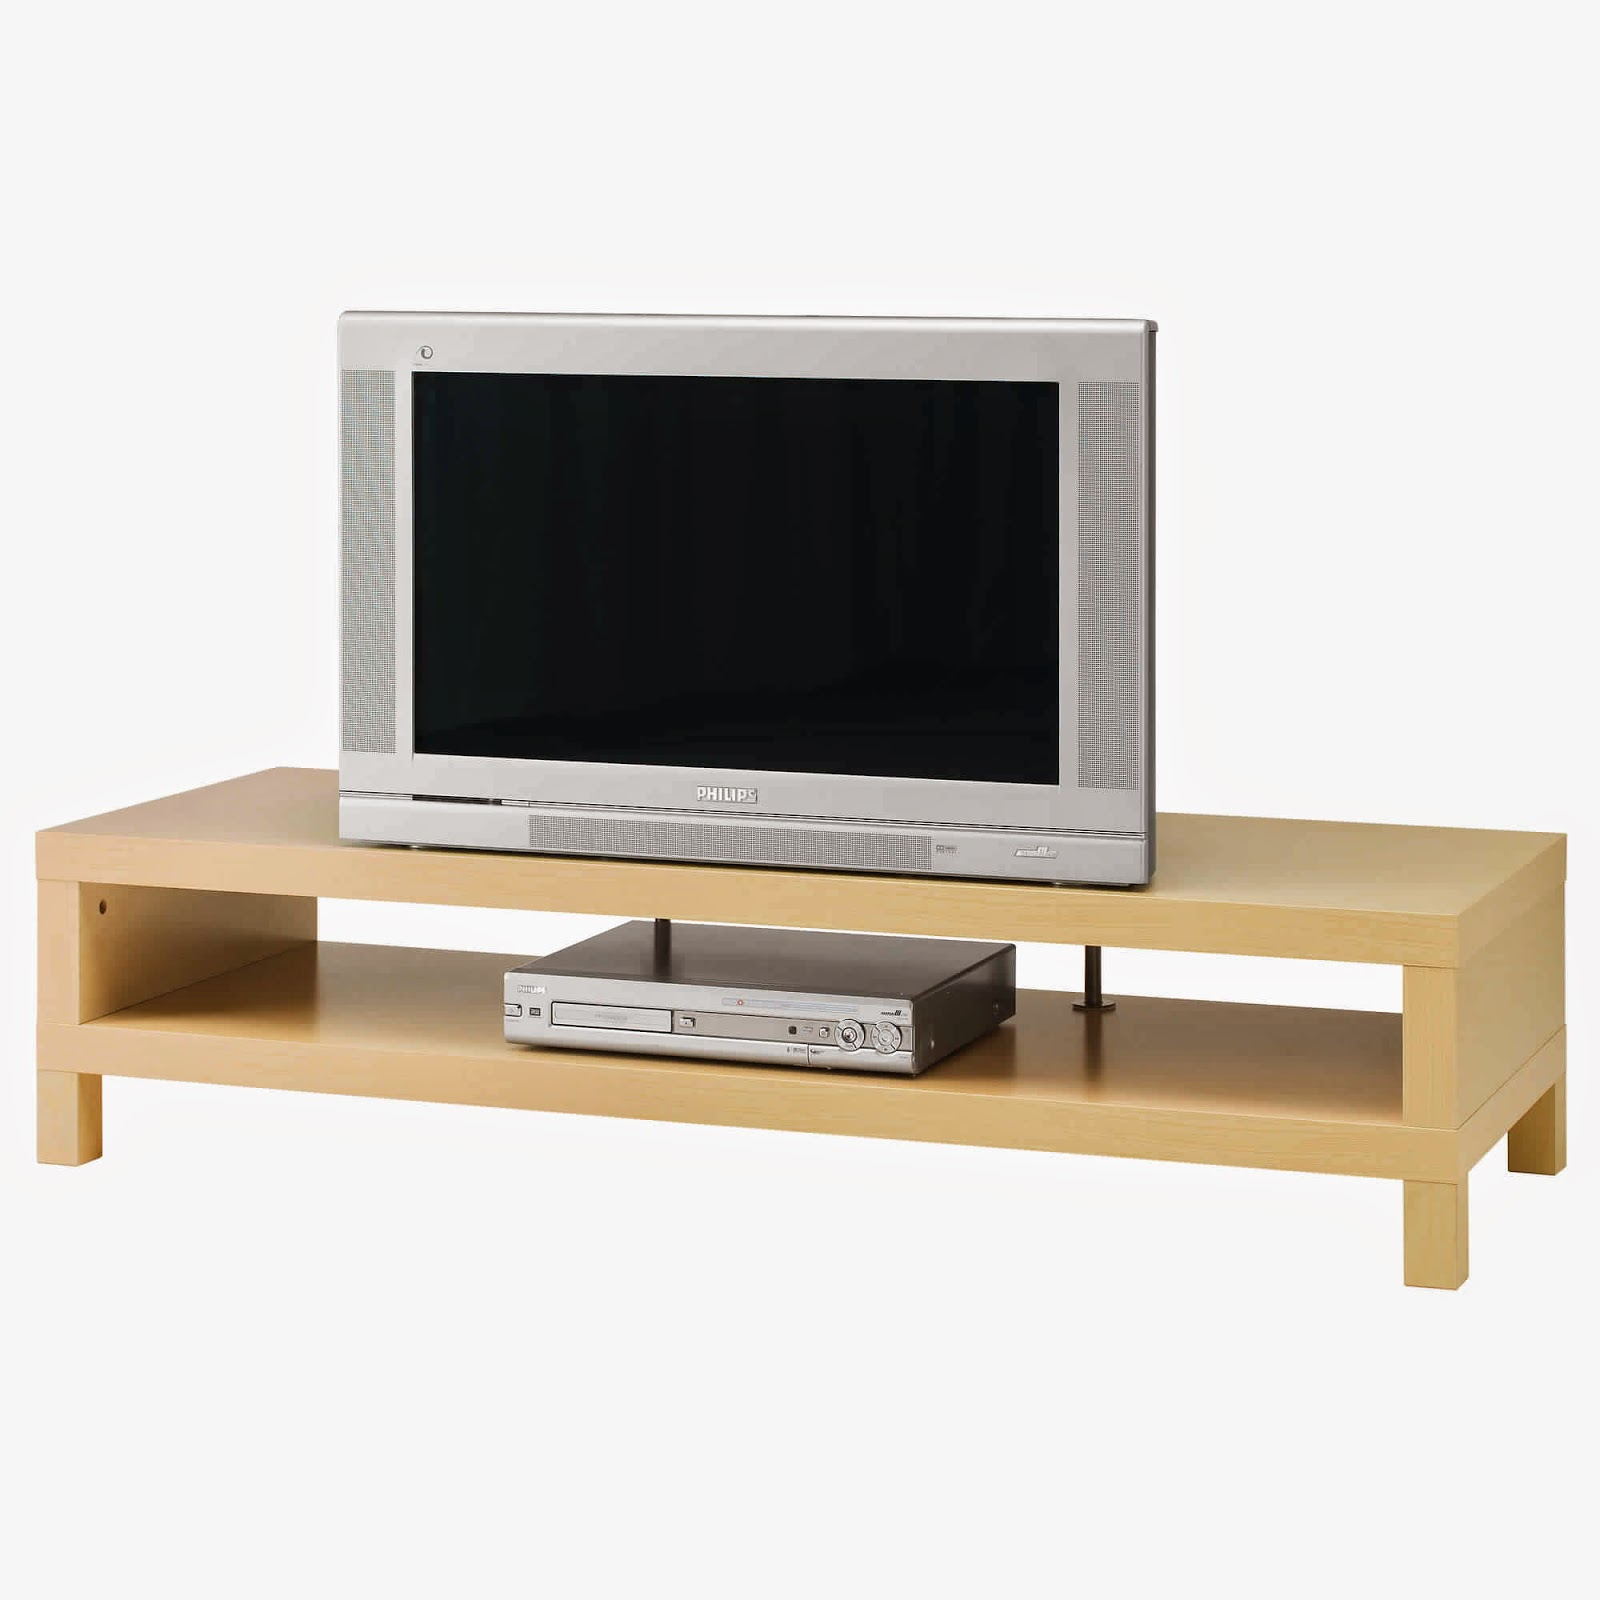 119 meuble tv metal ikea beautiful meuble tv style industriel images plasma tv pictures. Black Bedroom Furniture Sets. Home Design Ideas